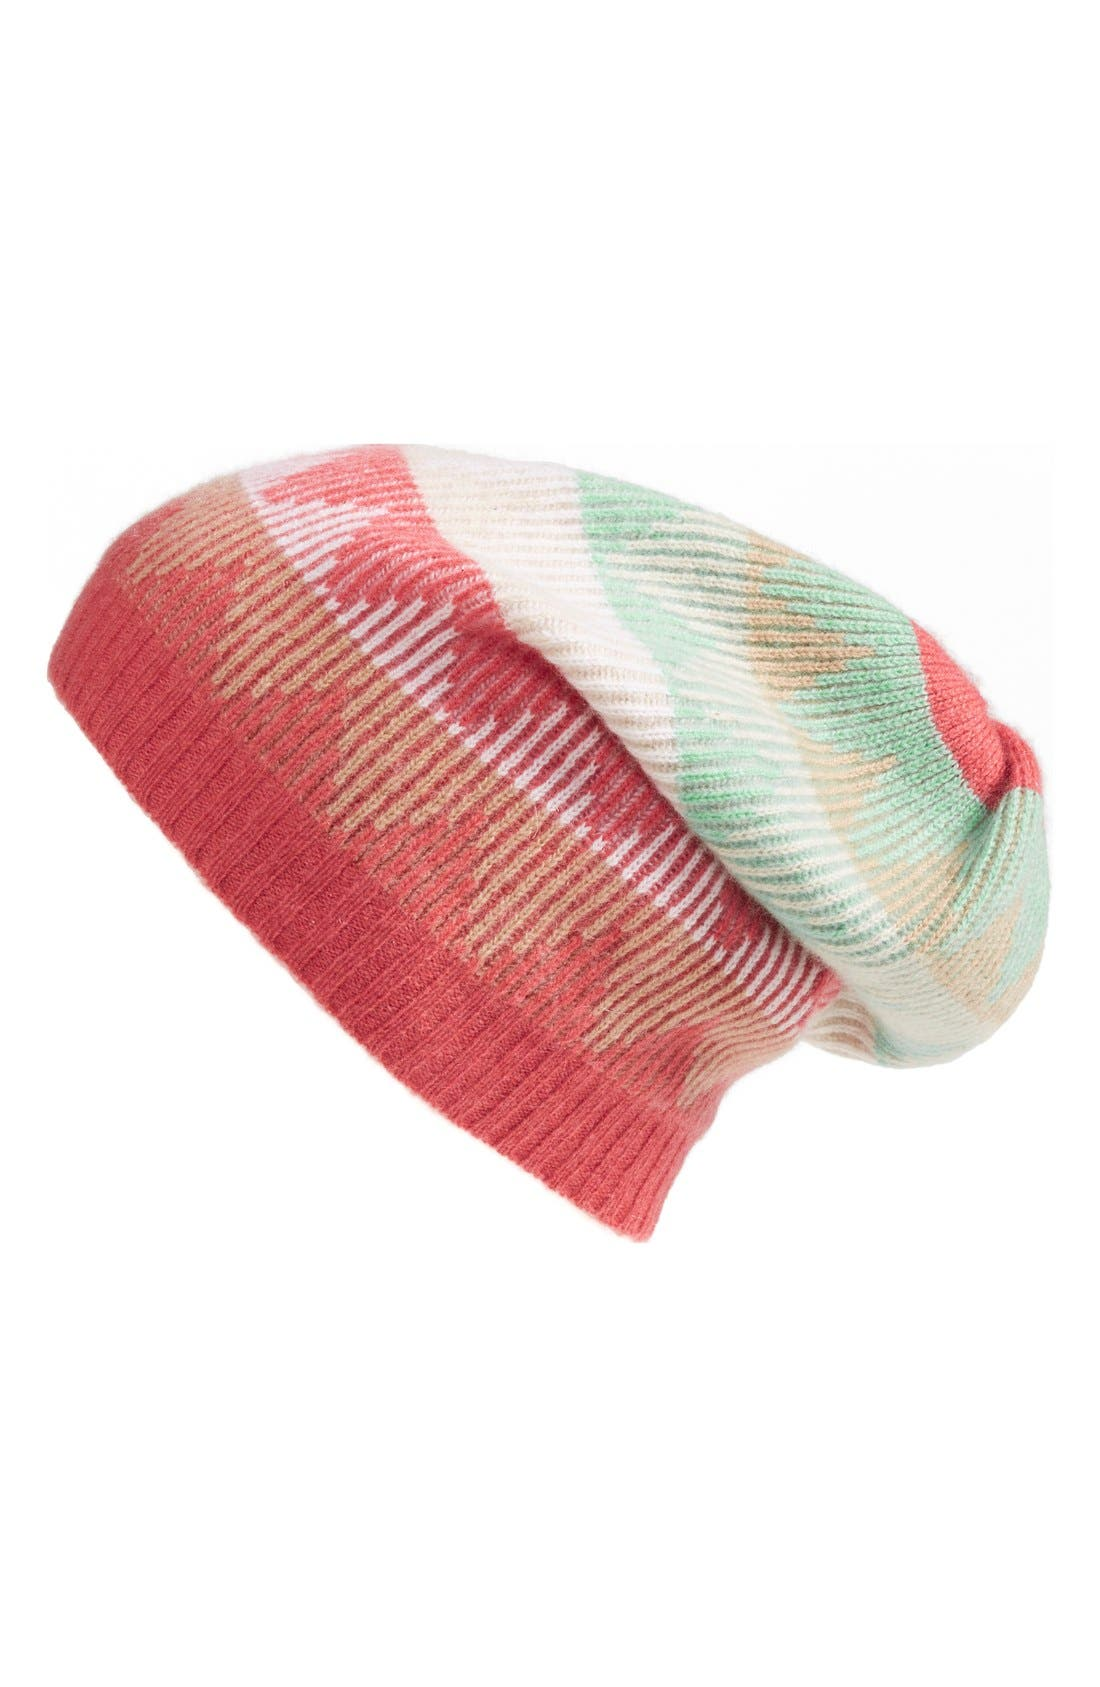 Main Image - Made of Me Zigzag Slouchy Cashmere Beanie